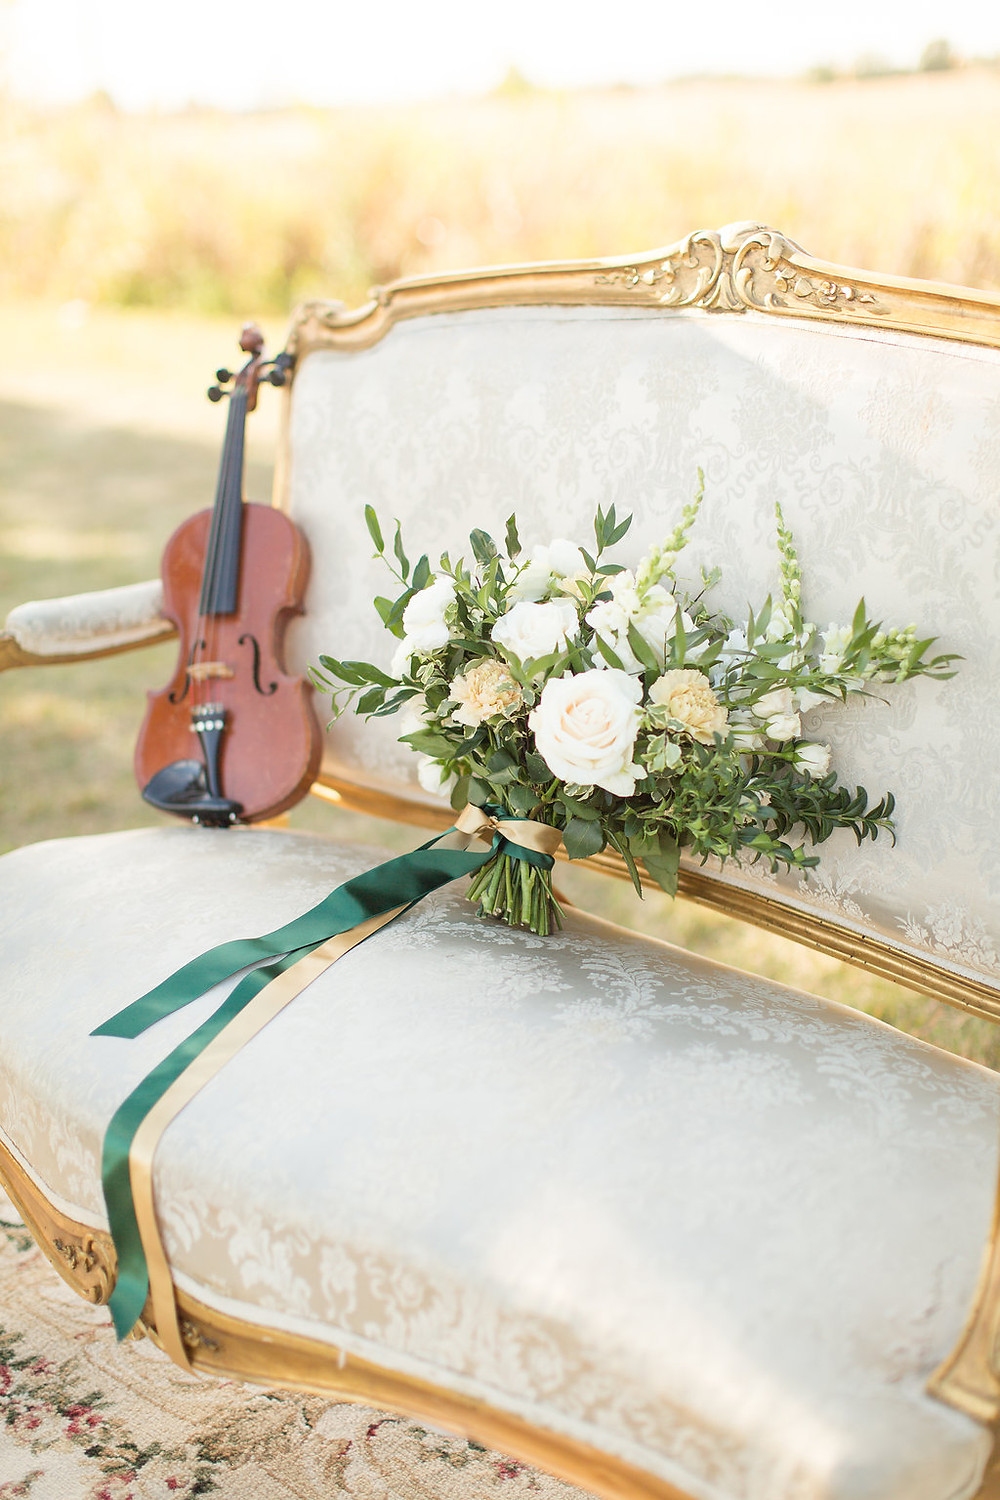 Vintage Platinum settee with floral bouquet, and violin, were perfect Celtic touches for the emerald green and gold wedding.